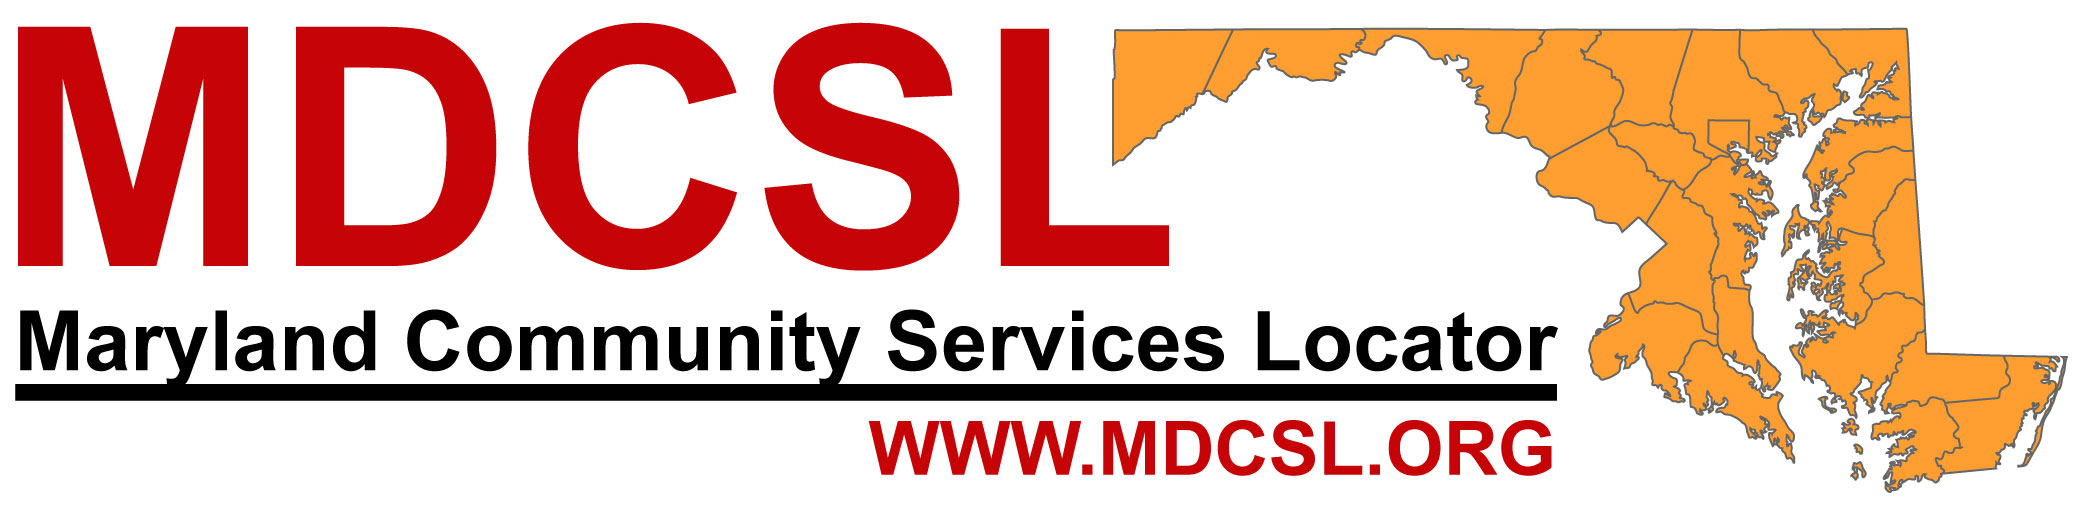 Maryland Community Services Locator (MDCSL)